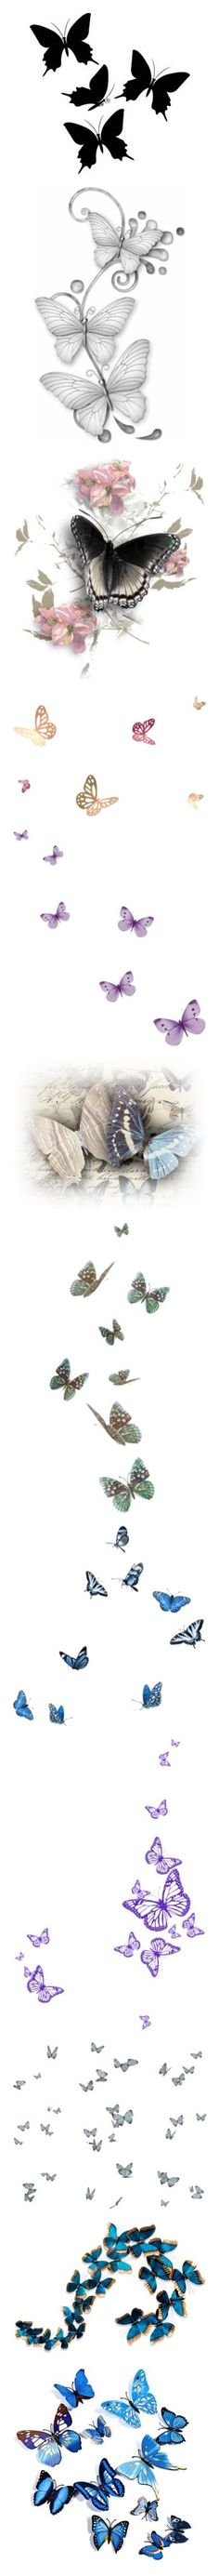 """Butterfly Fillers!"" by vahrendsen1988 ❤ liked on Polyvore featuring butterflies, backgrounds, animals, decorations, black, fillers, effects, flowers, embellish and borders"